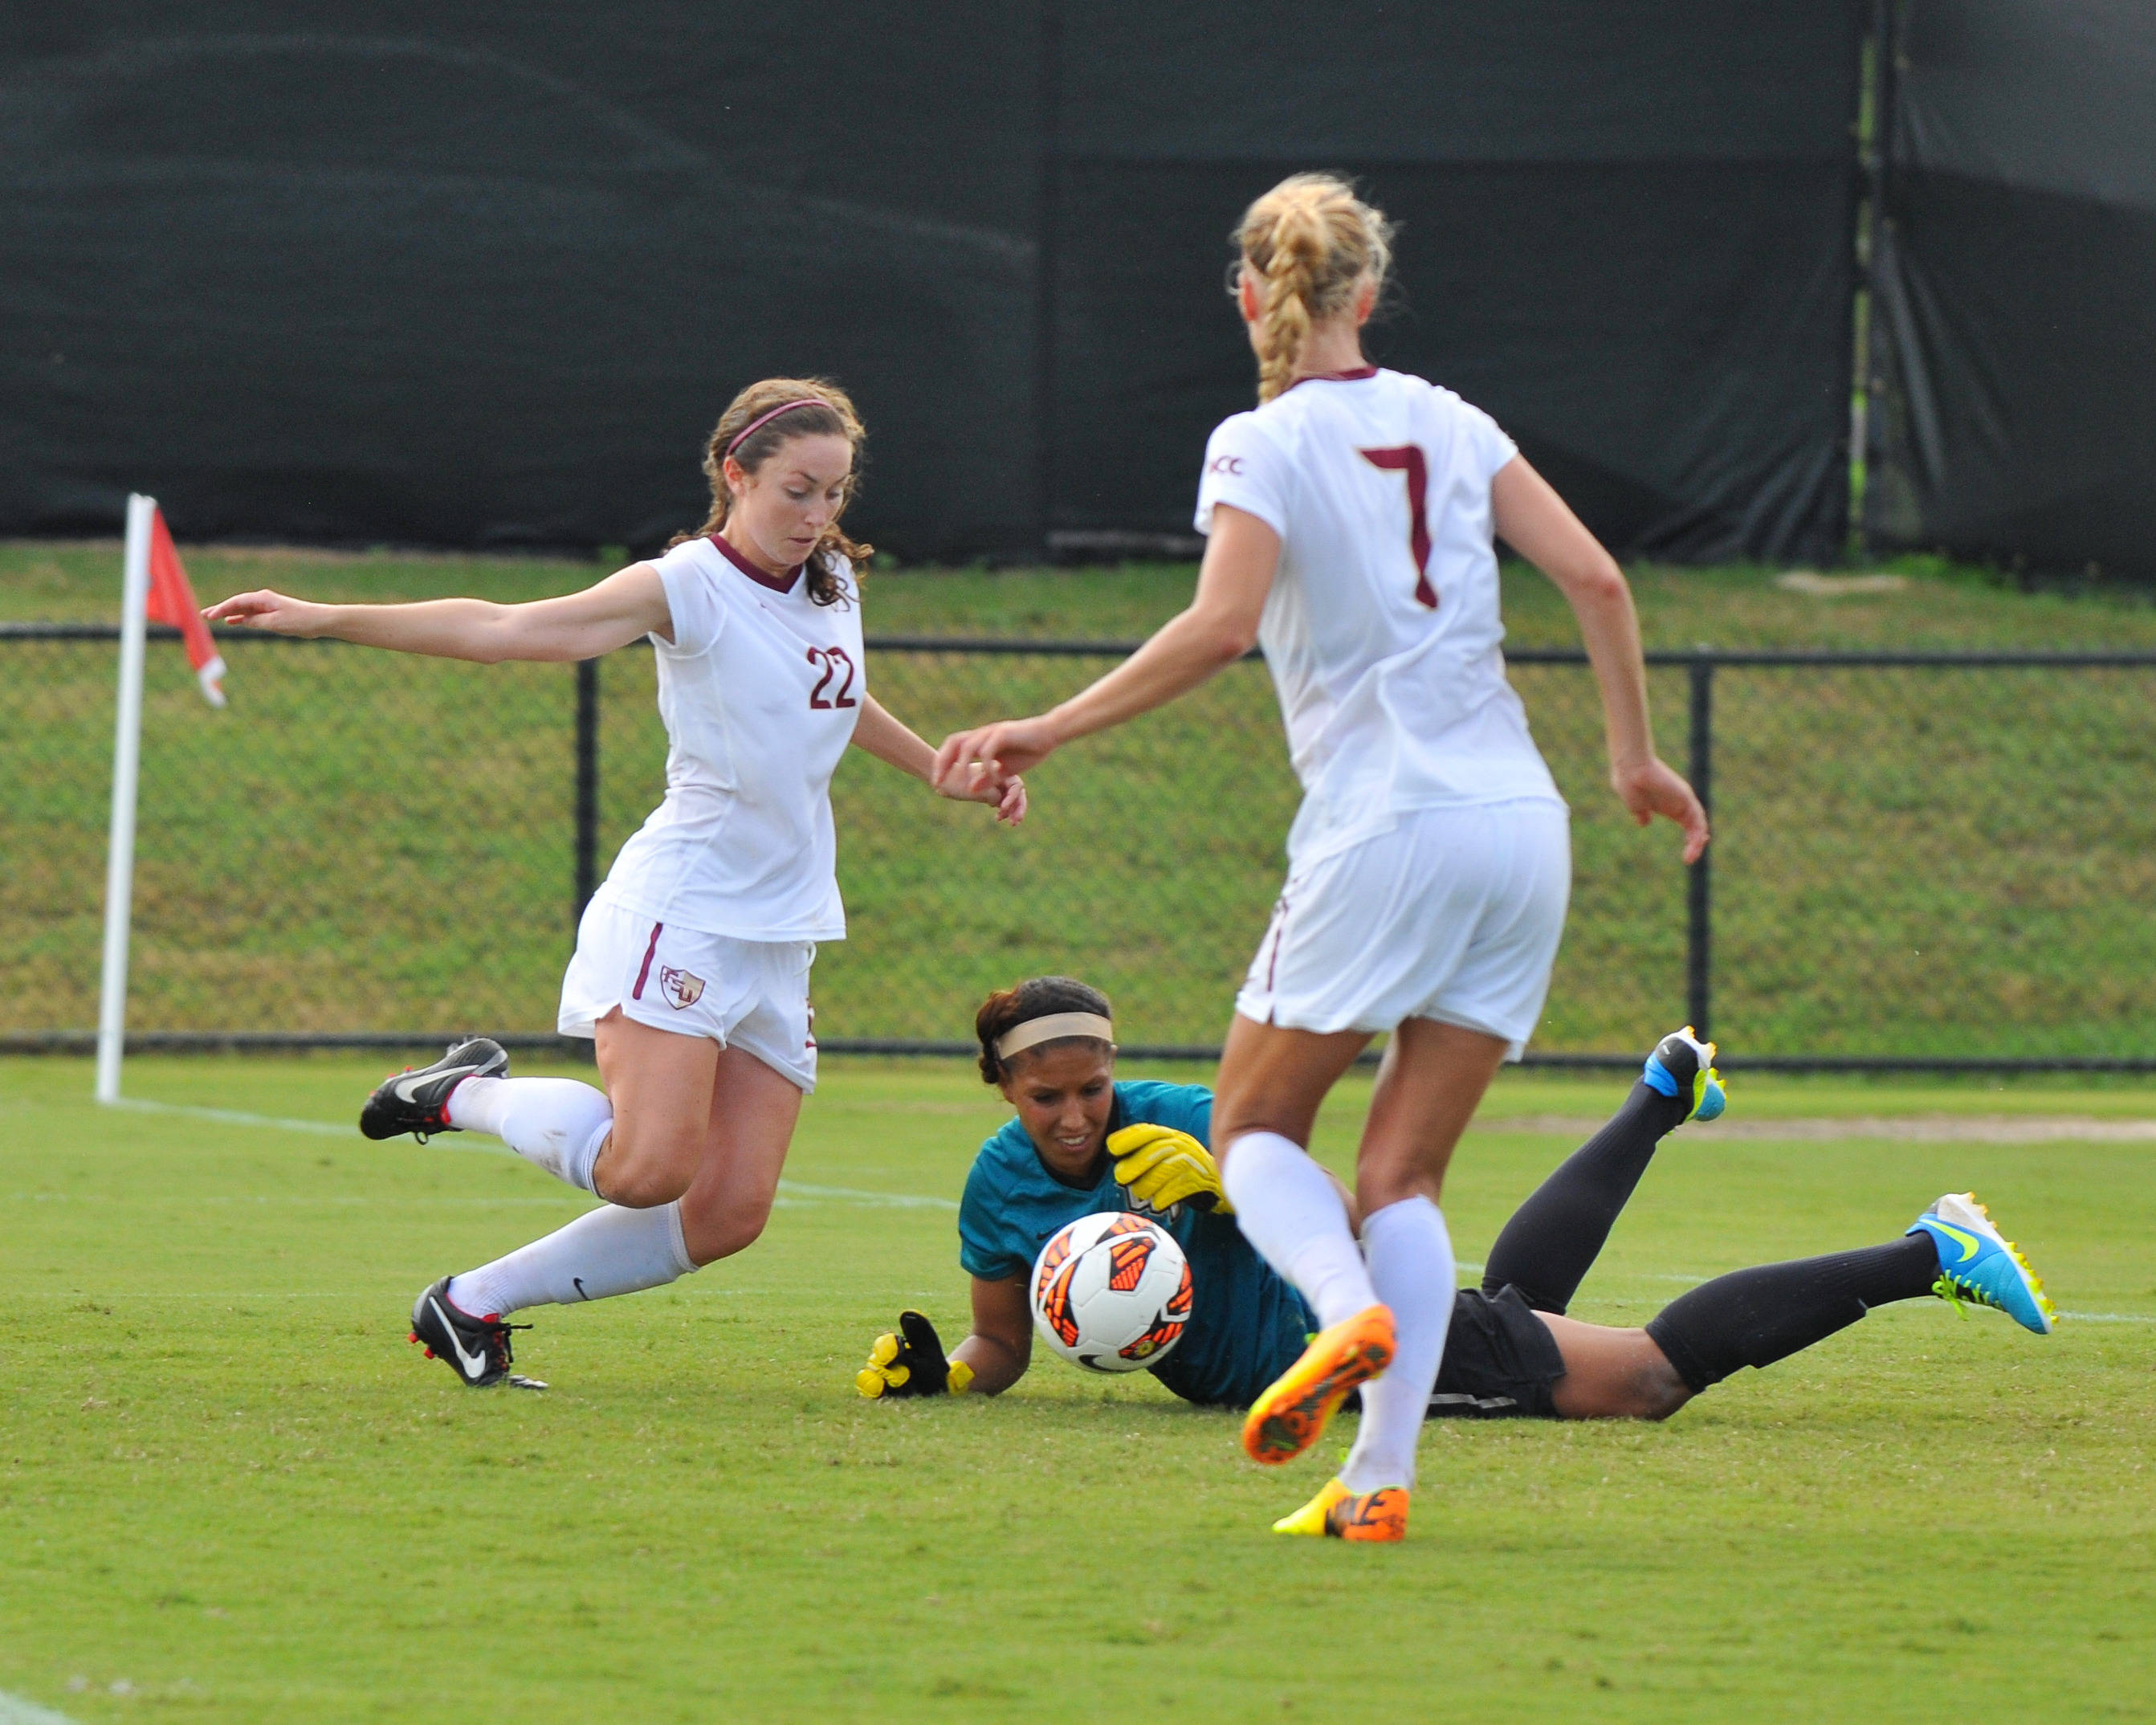 Kirsten Crowley nets the game-winner in overtime to lead FSU past UCF